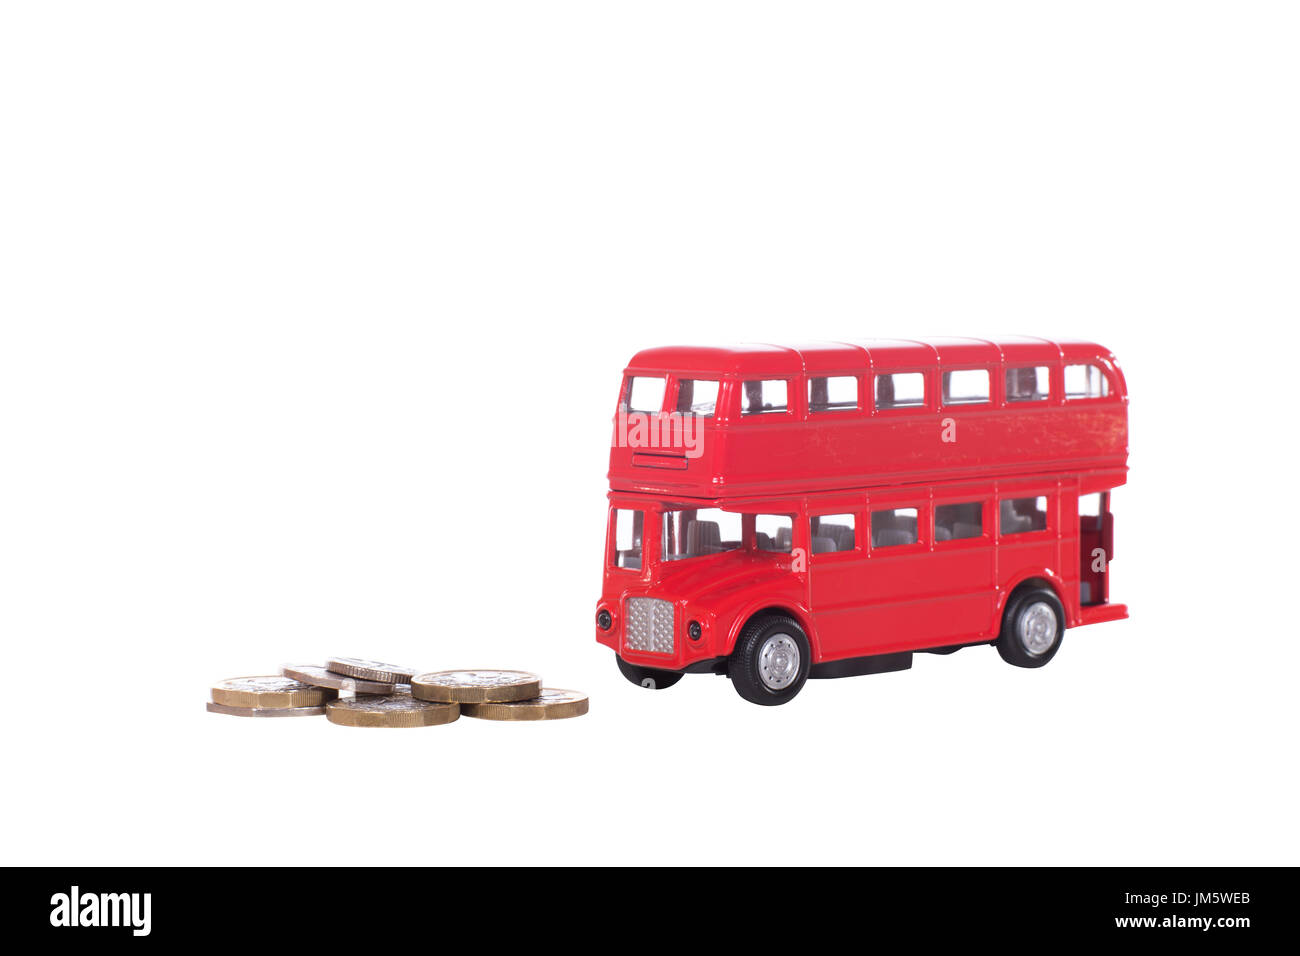 Cash coins with a model red double-decker bus symbolic of British transport and the cost of travelling isolated on white - Stock Image